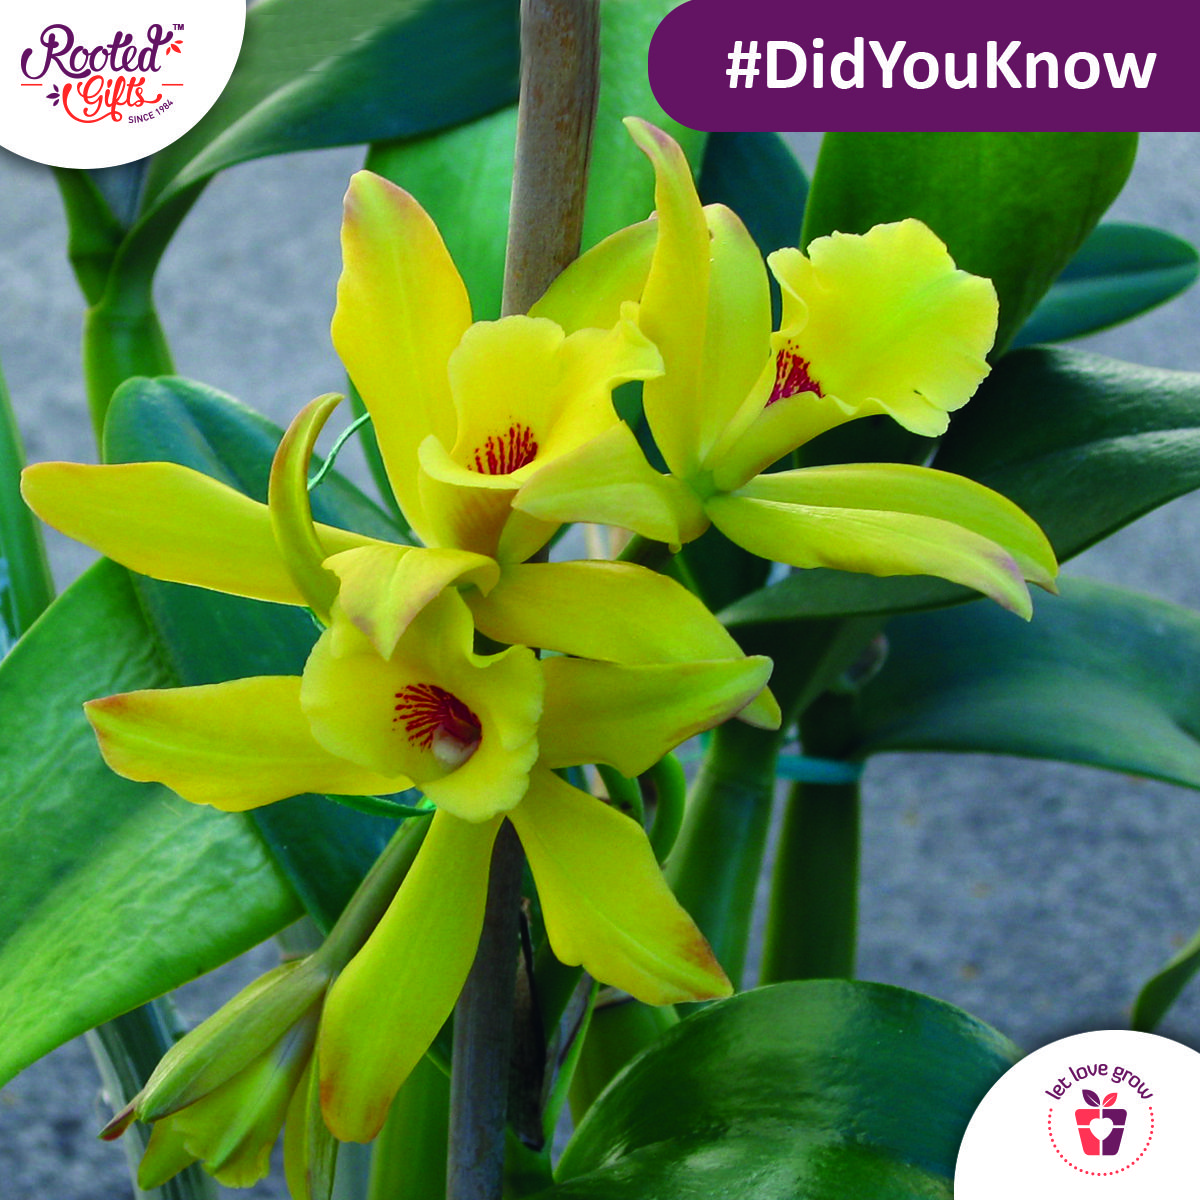 Didyouknow the vanilla plant is in fact a member of the orchid